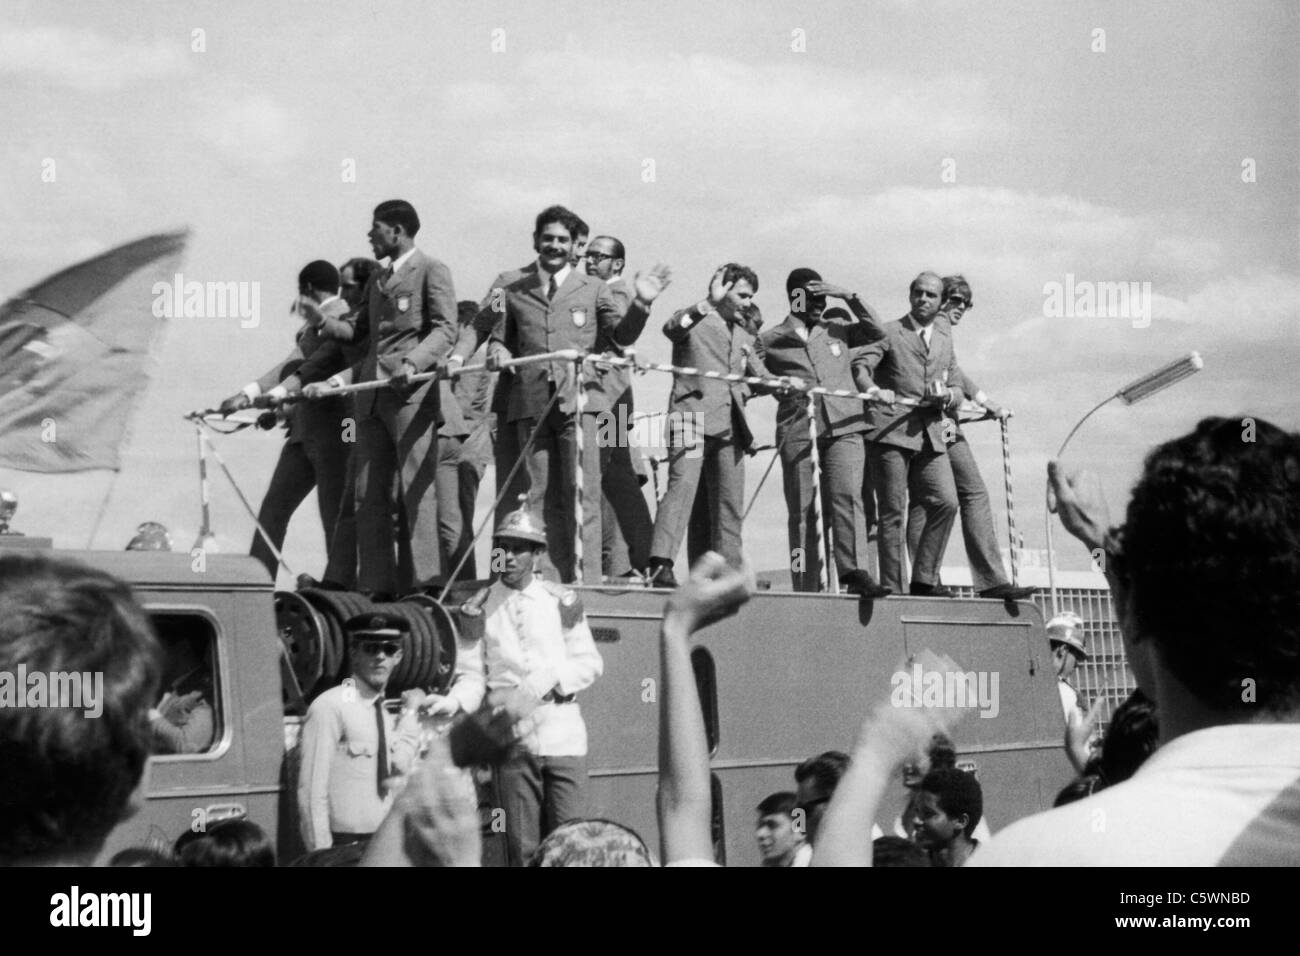 Arrival in Brasilia of Brazilian Football Team, World Champion, 1970 - Stock Image